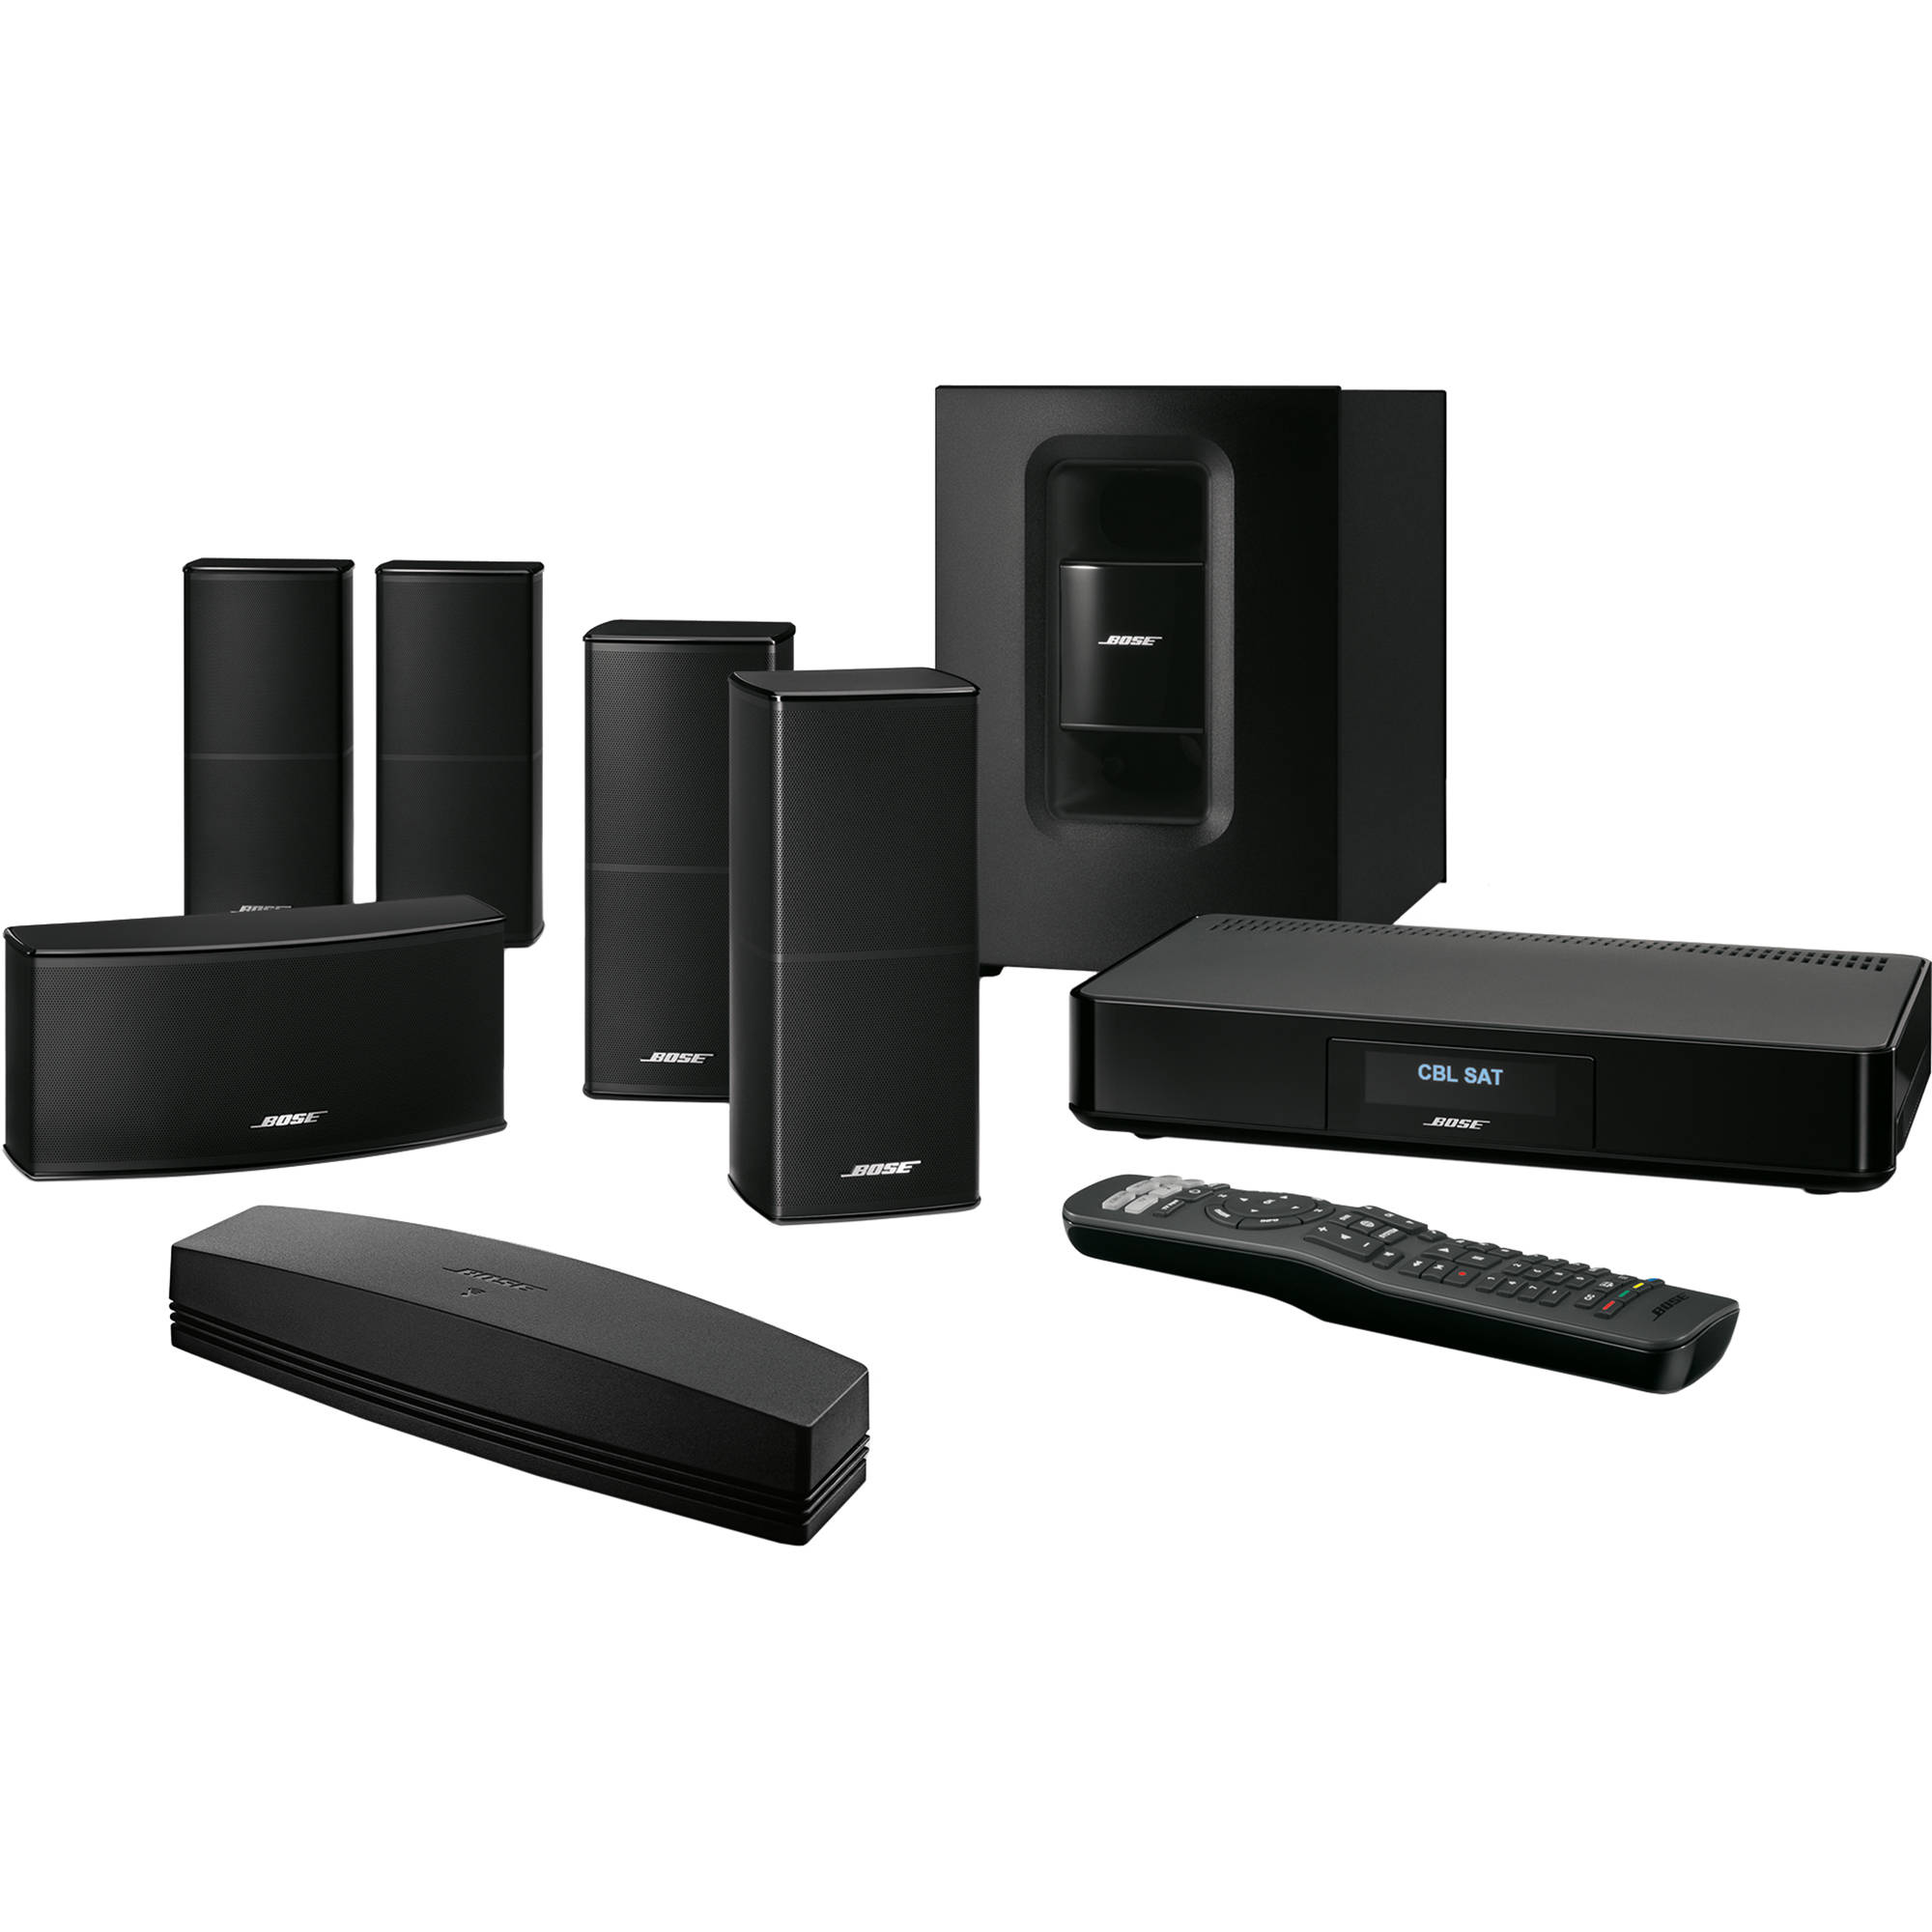 bose soundtouch 520 home theater system black 738377. Black Bedroom Furniture Sets. Home Design Ideas